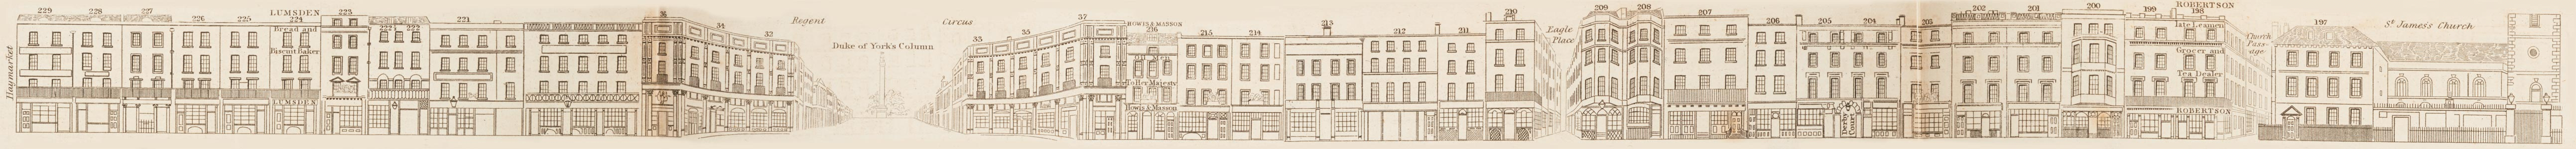 map - Tallis's London street views : No. 25. Piccadilly, division 1 (south)